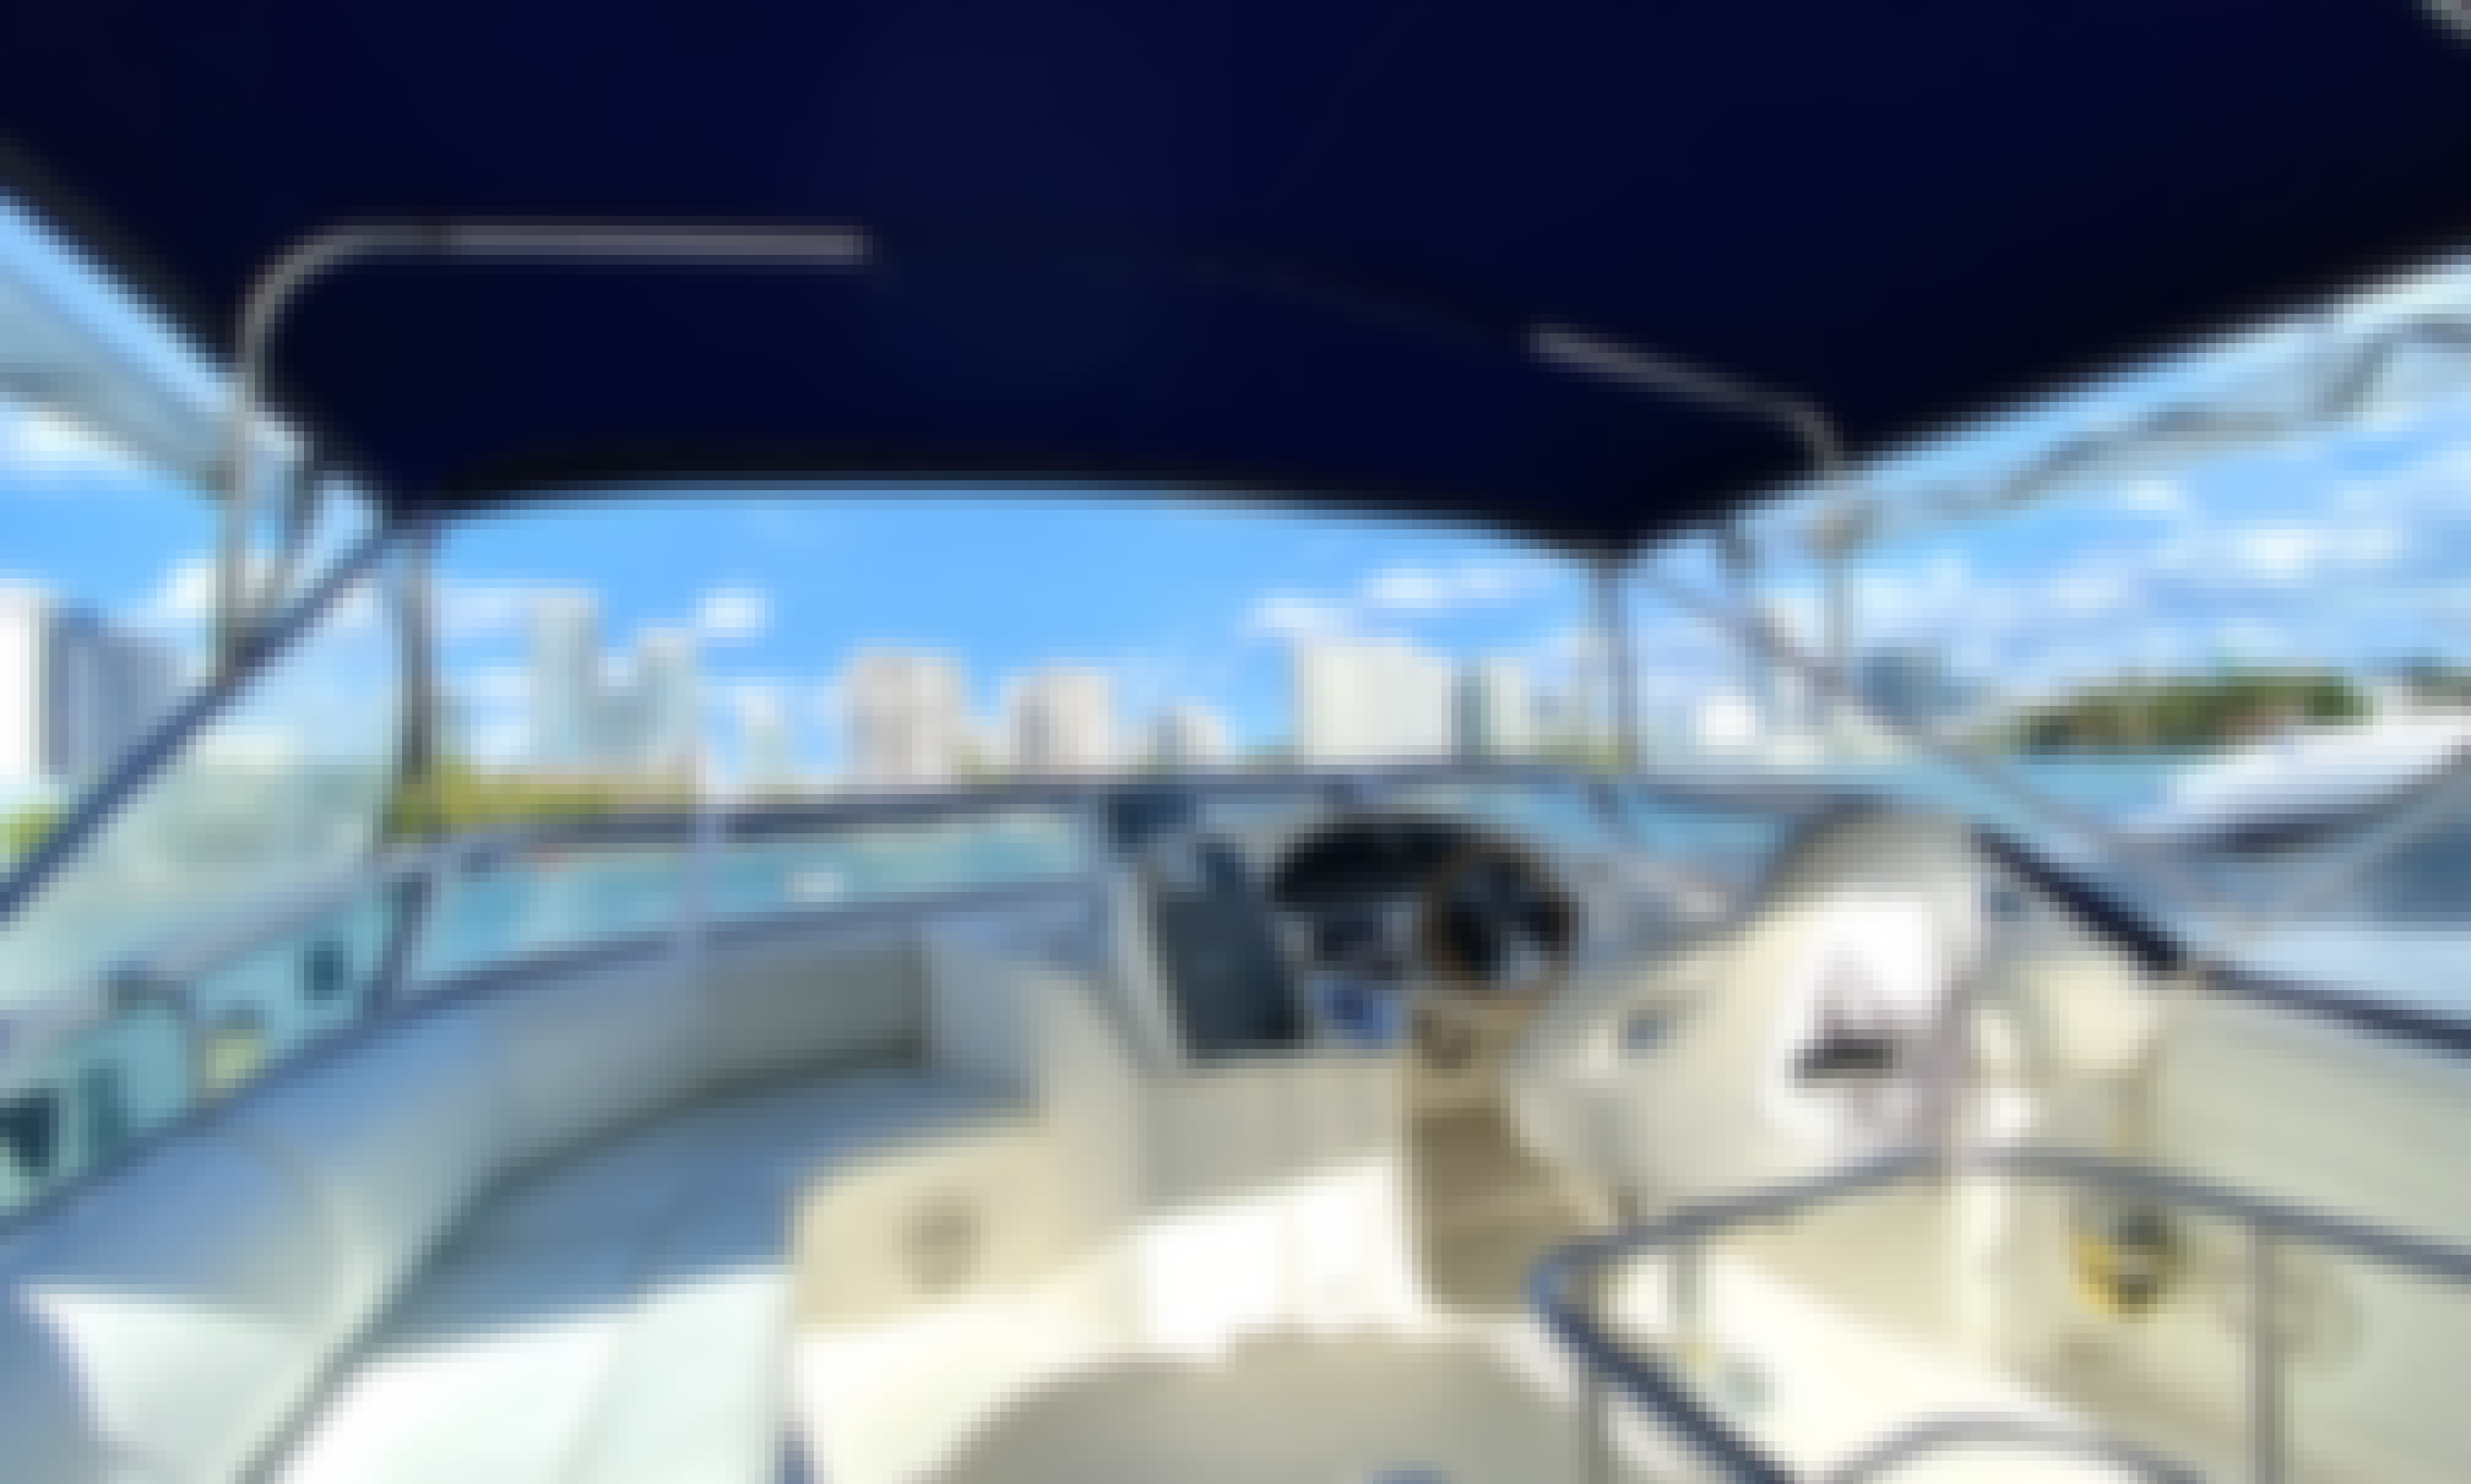 46' Azimut Motor Yacht for Charter in Miami!